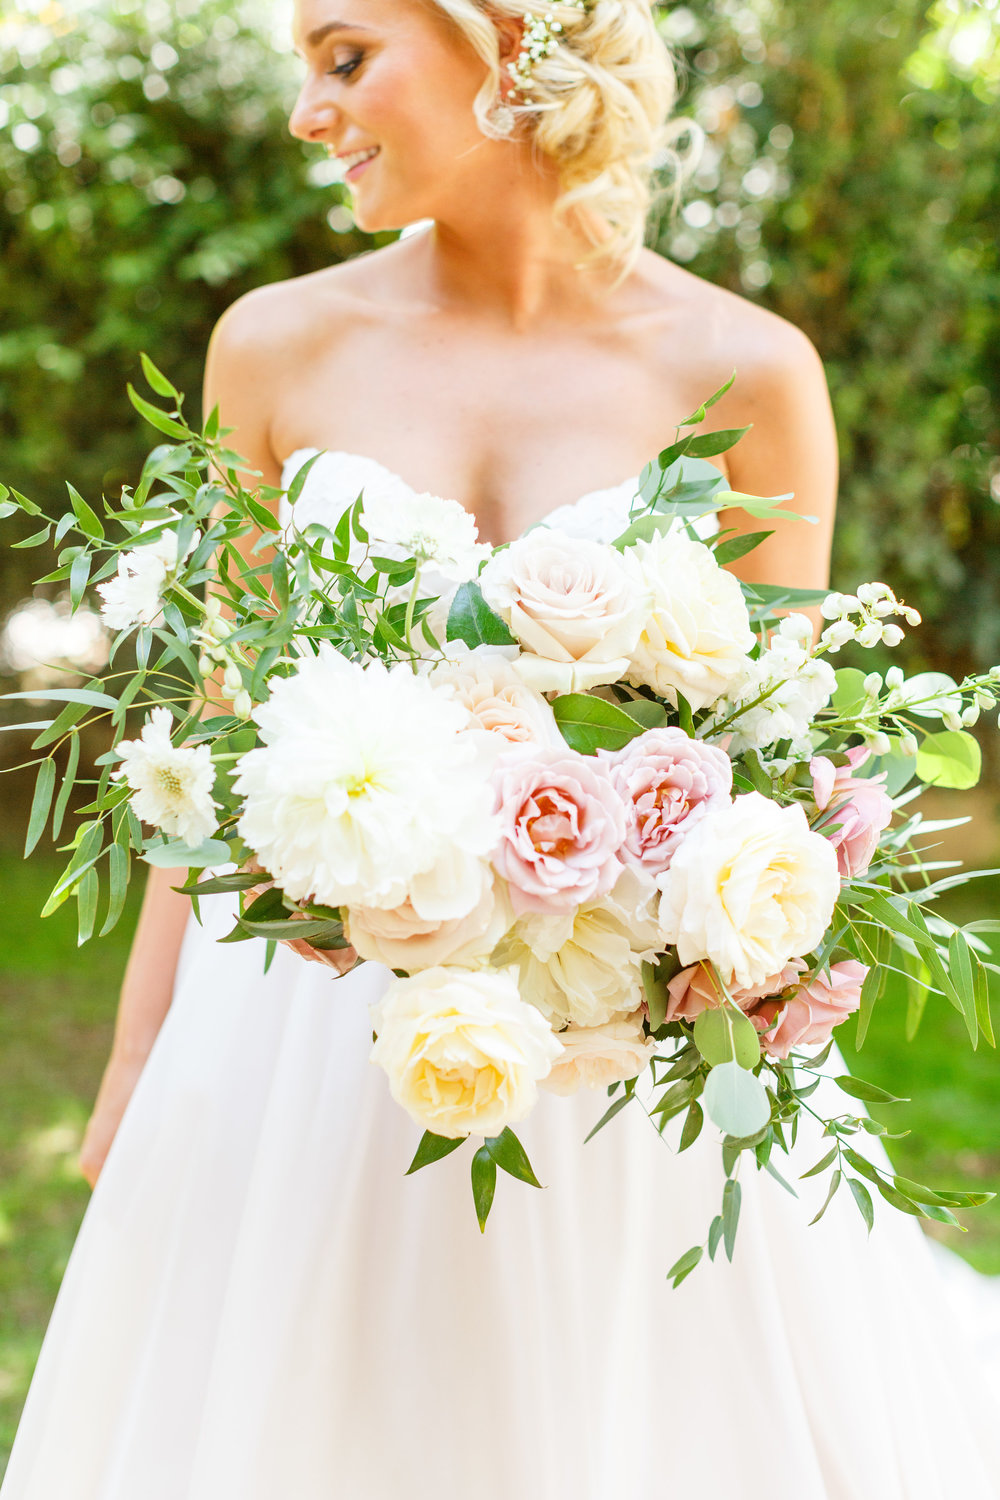 Romantic Bridal Bouquet 2.jpg